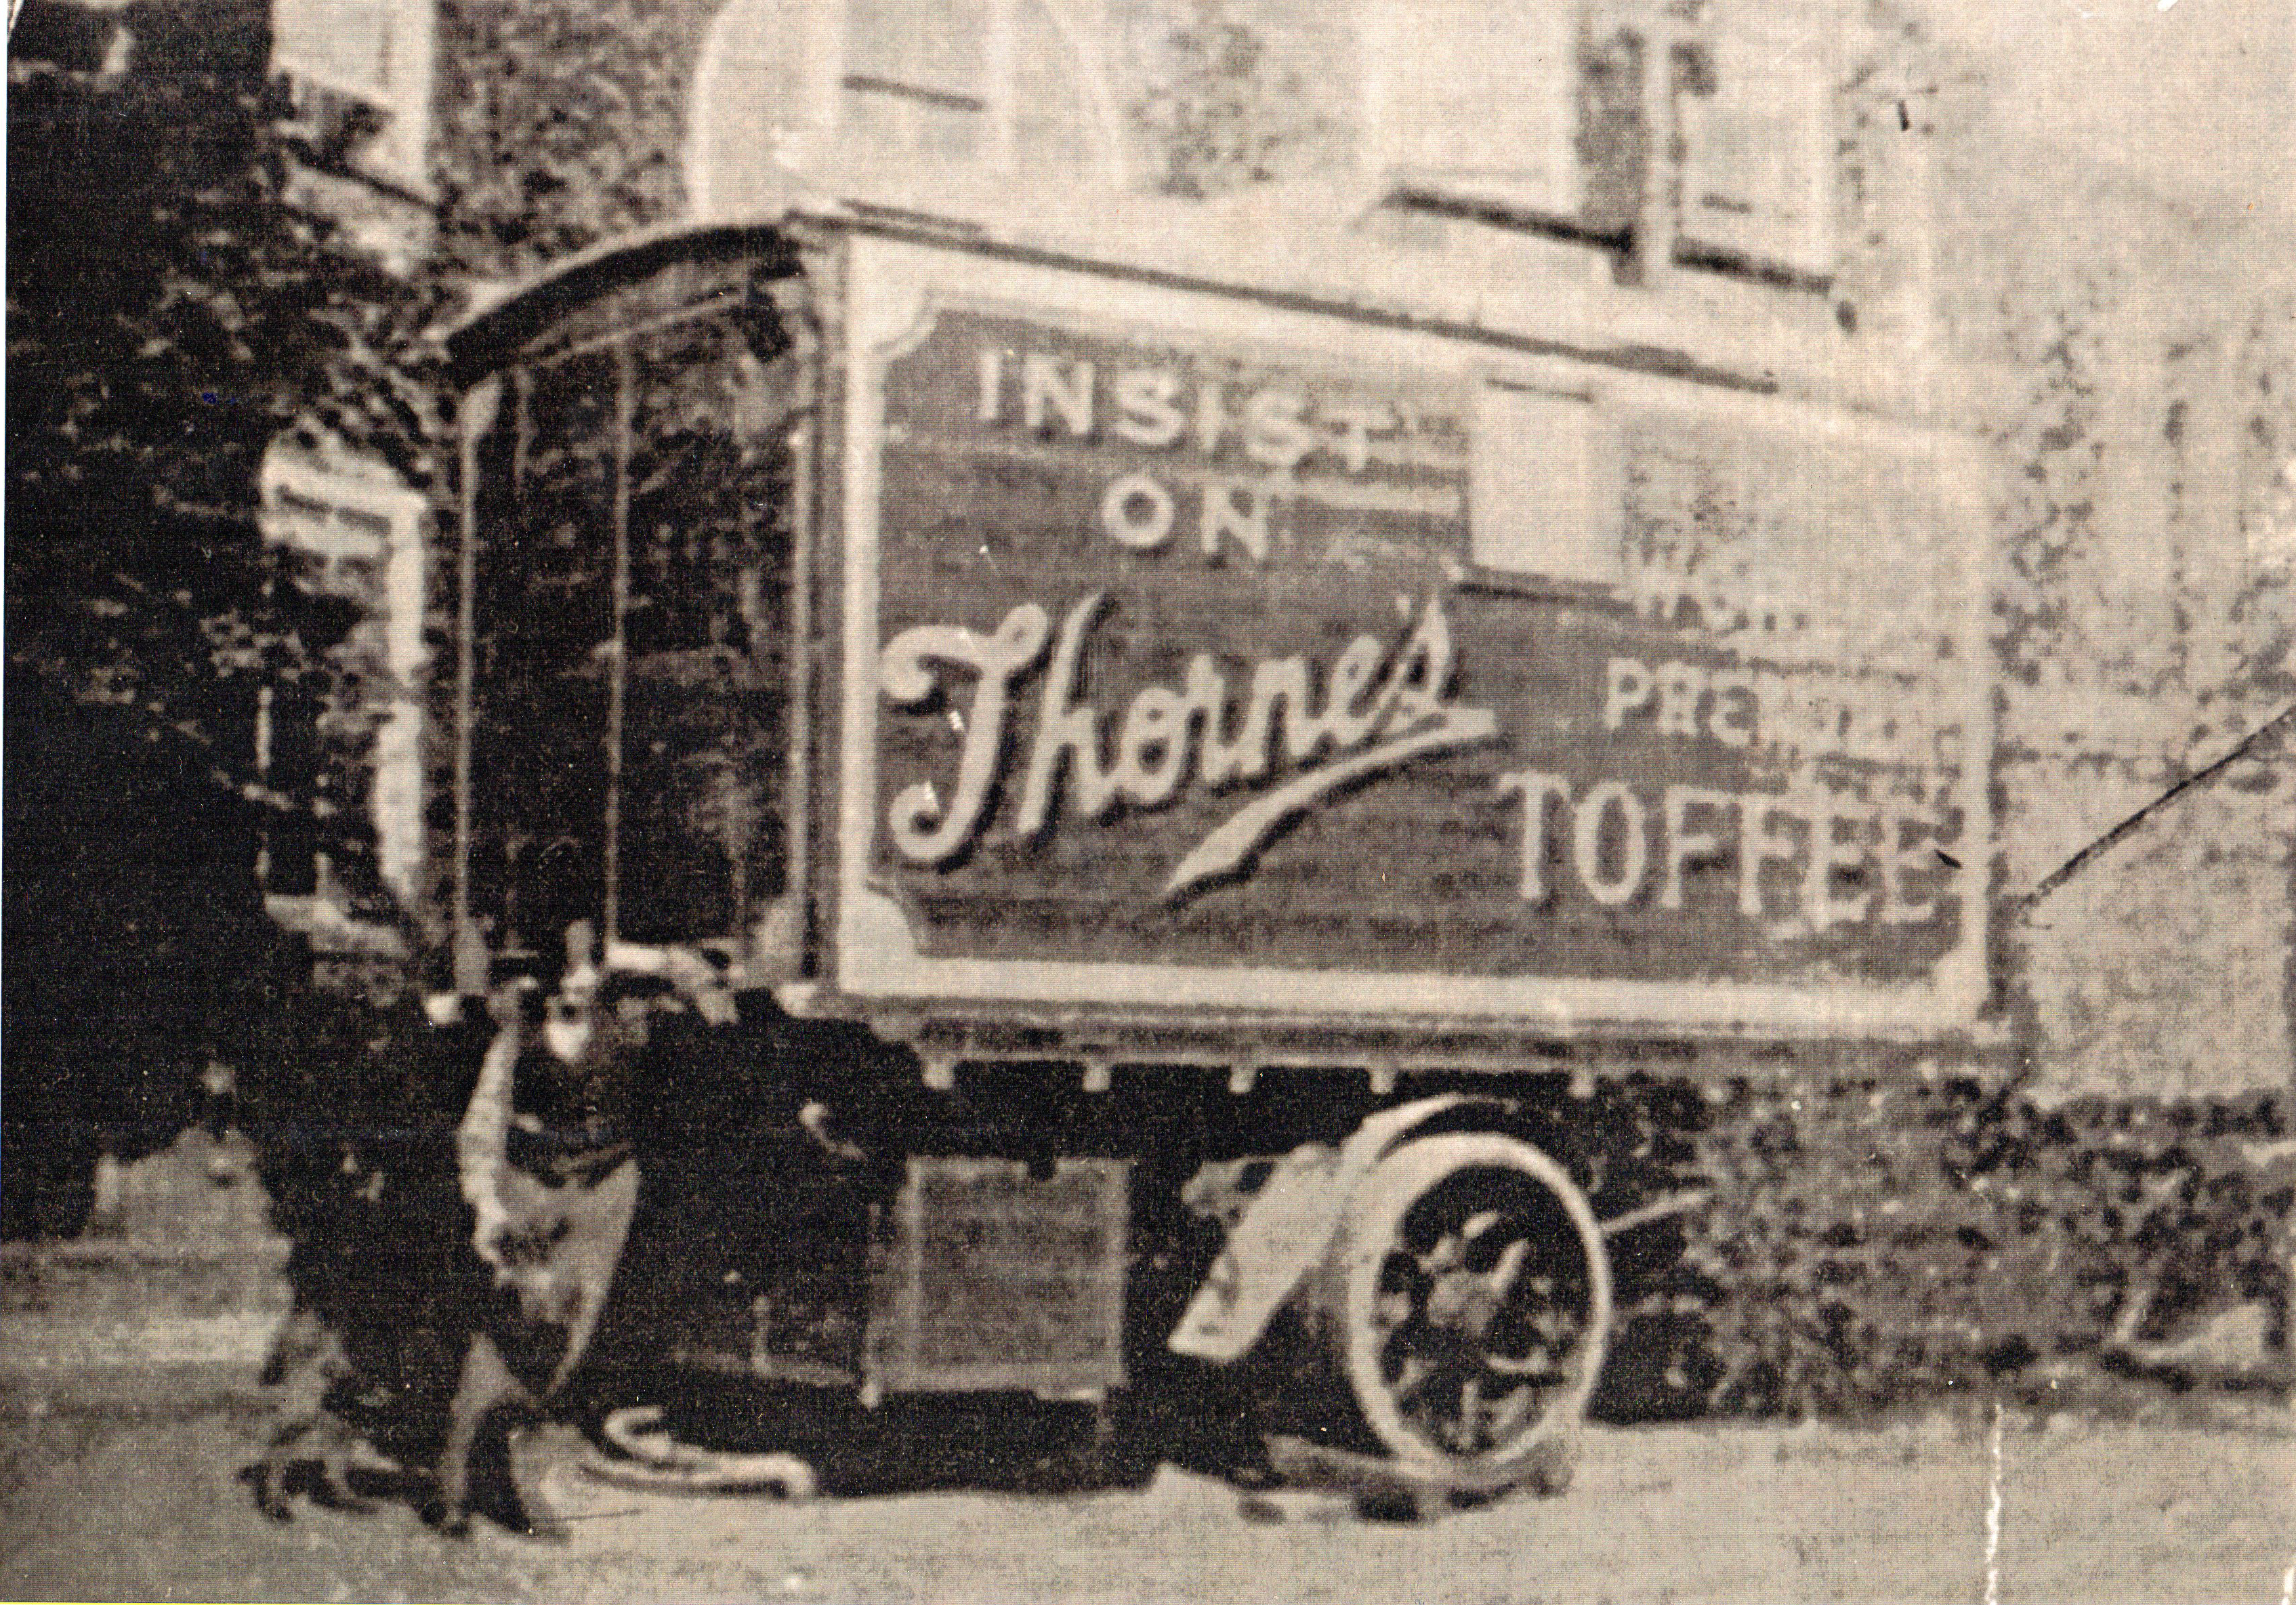 image of a steam wagon painted up by Thornes Toffee of Leeds